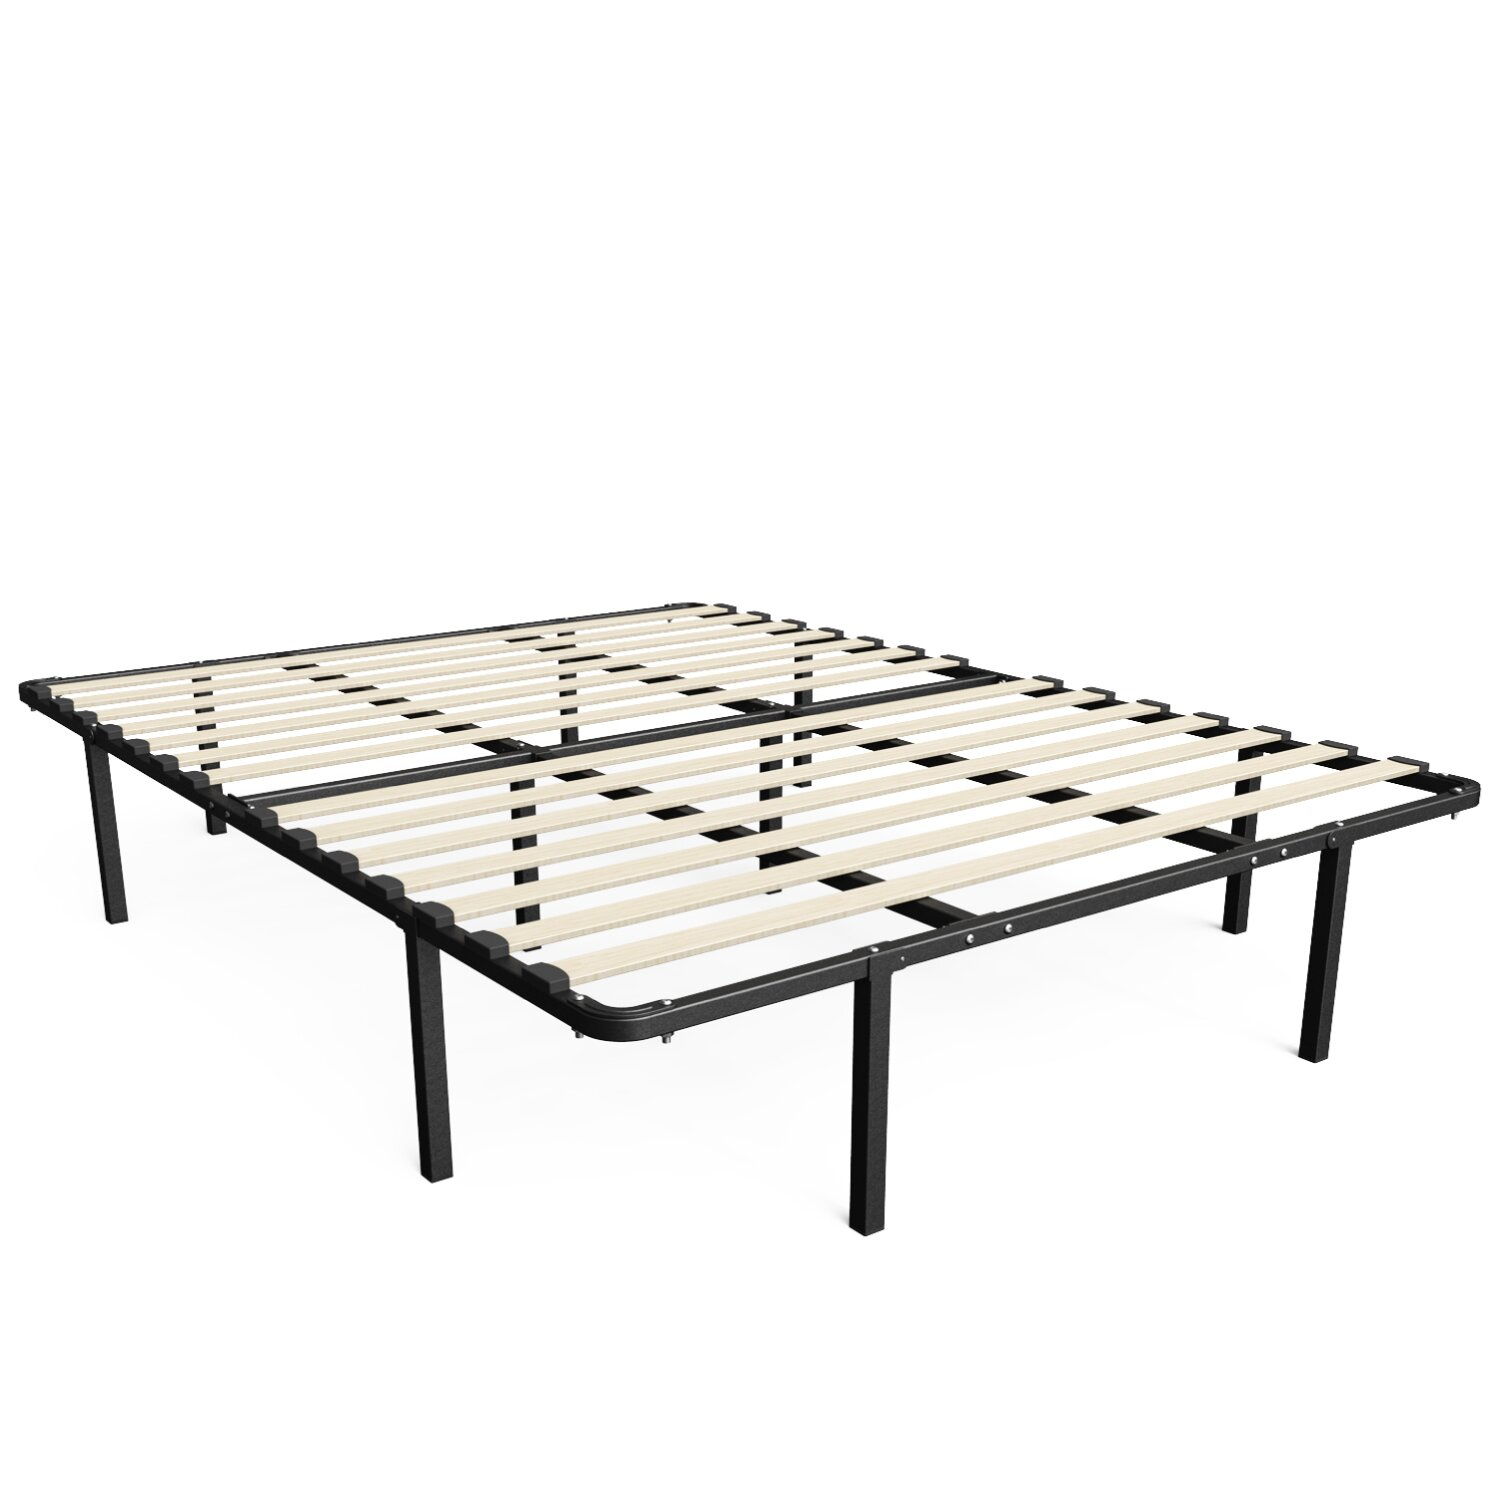 Image Result For Ortho Mattress Sale